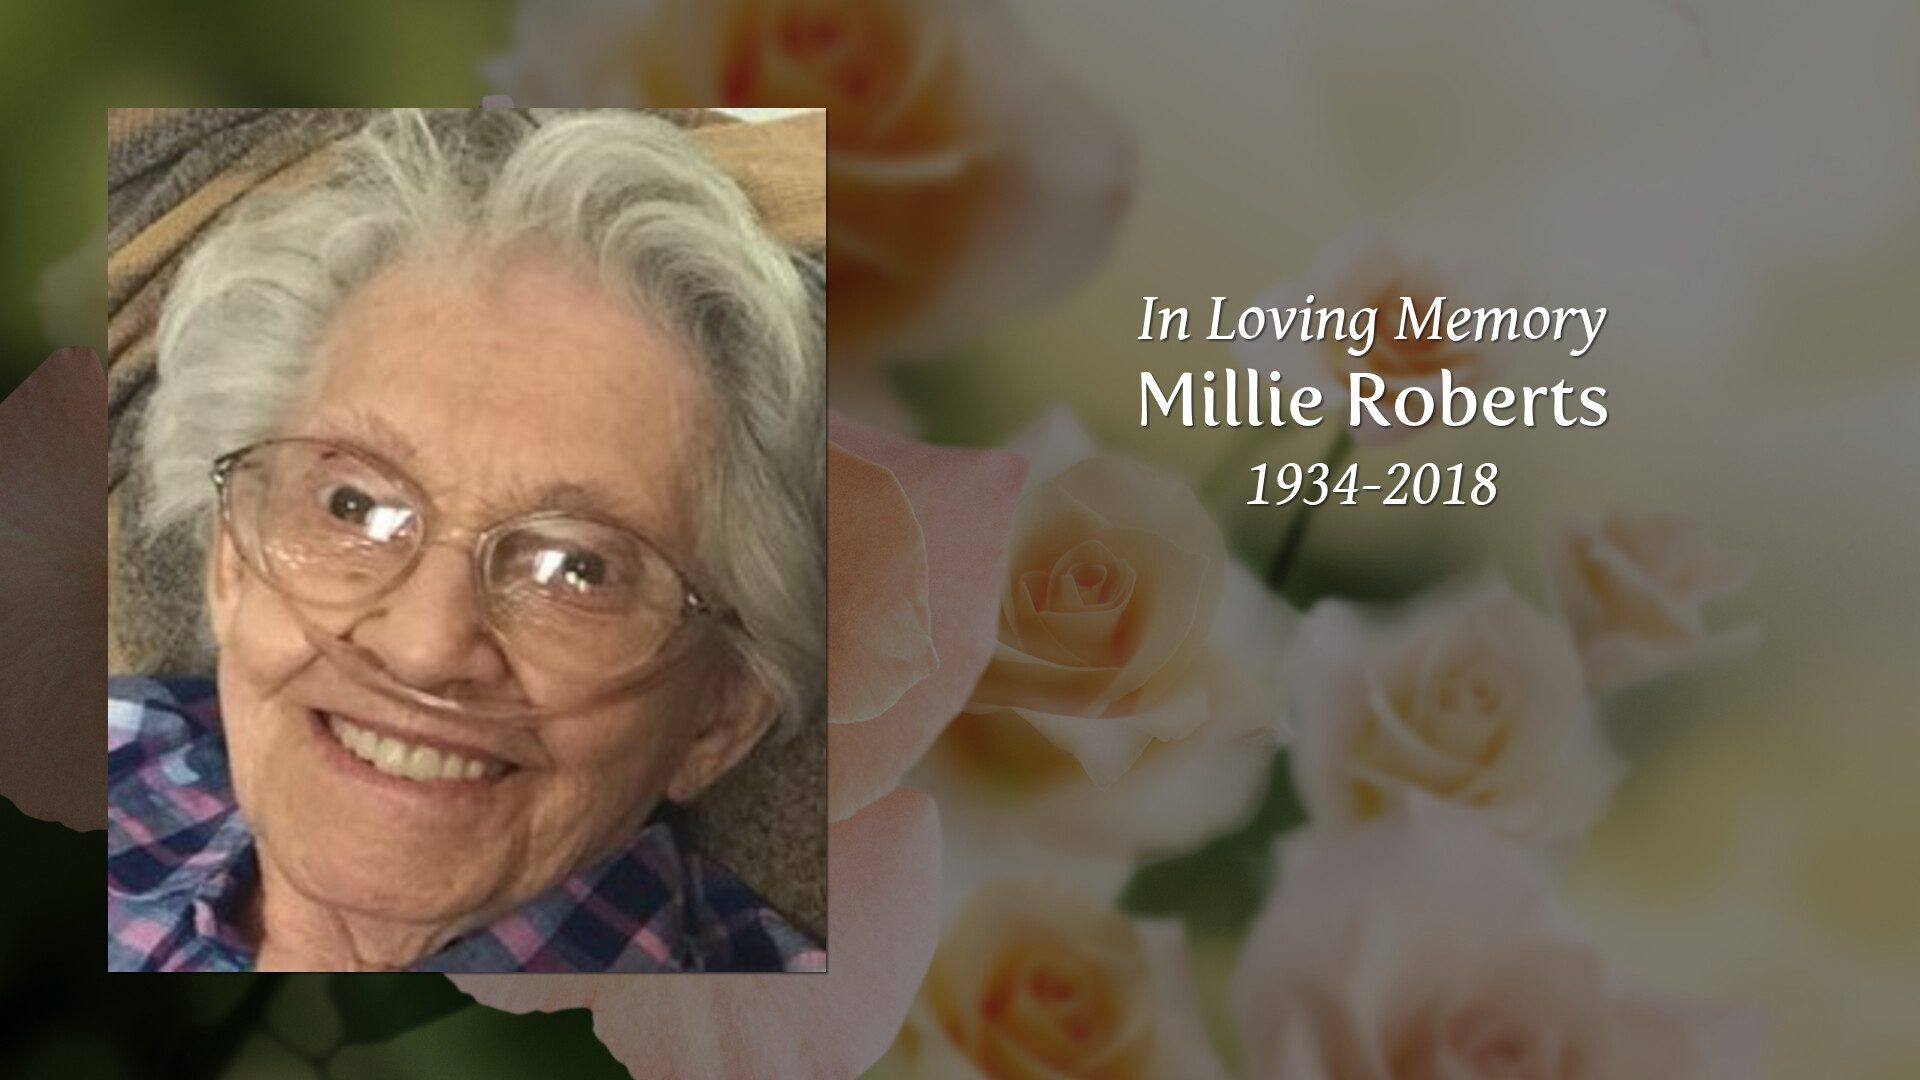 Penwell-Gabel Funeral Home - Millie Roberts 1934 - 2018